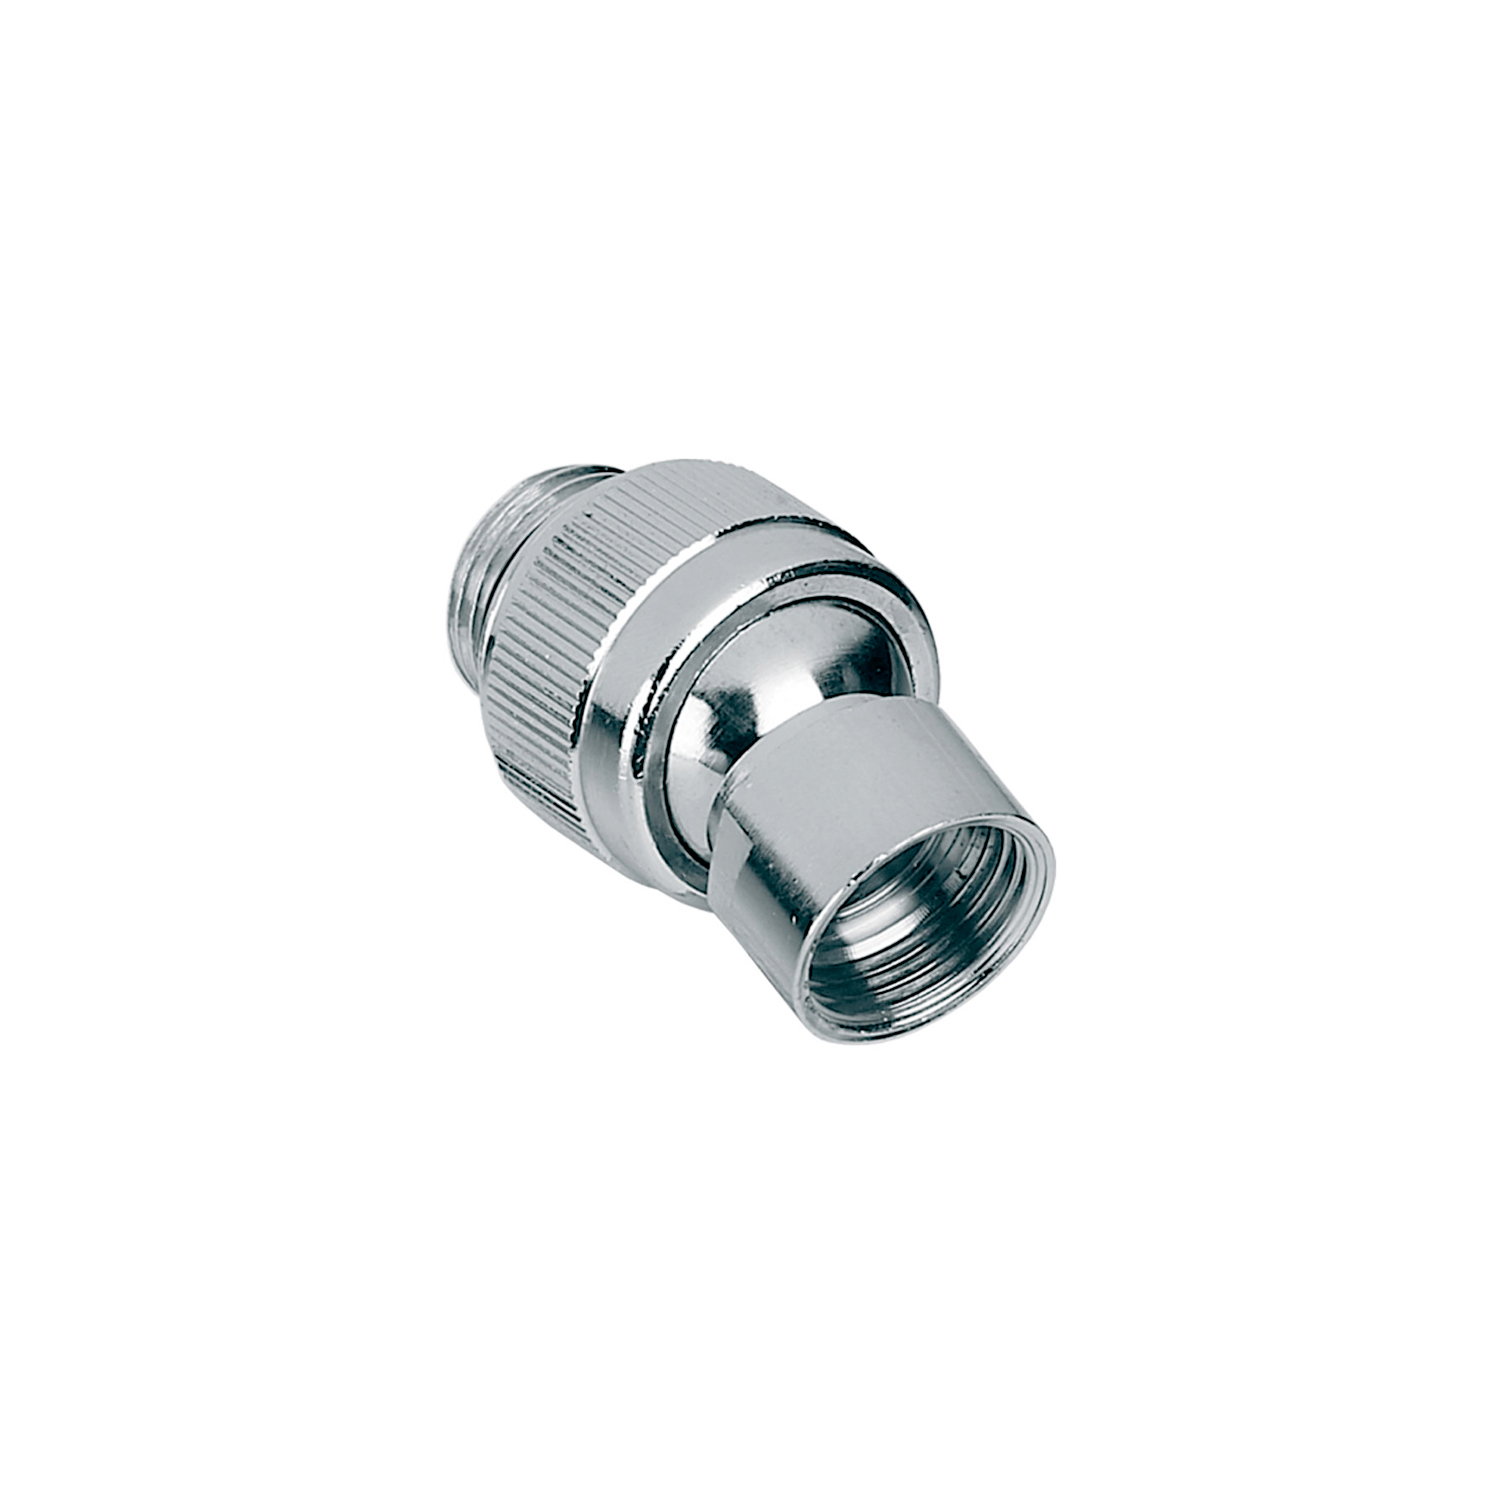 Lb 1725 Connector With Swivel Ball Joint For Shower Rose Lefroy Brooks